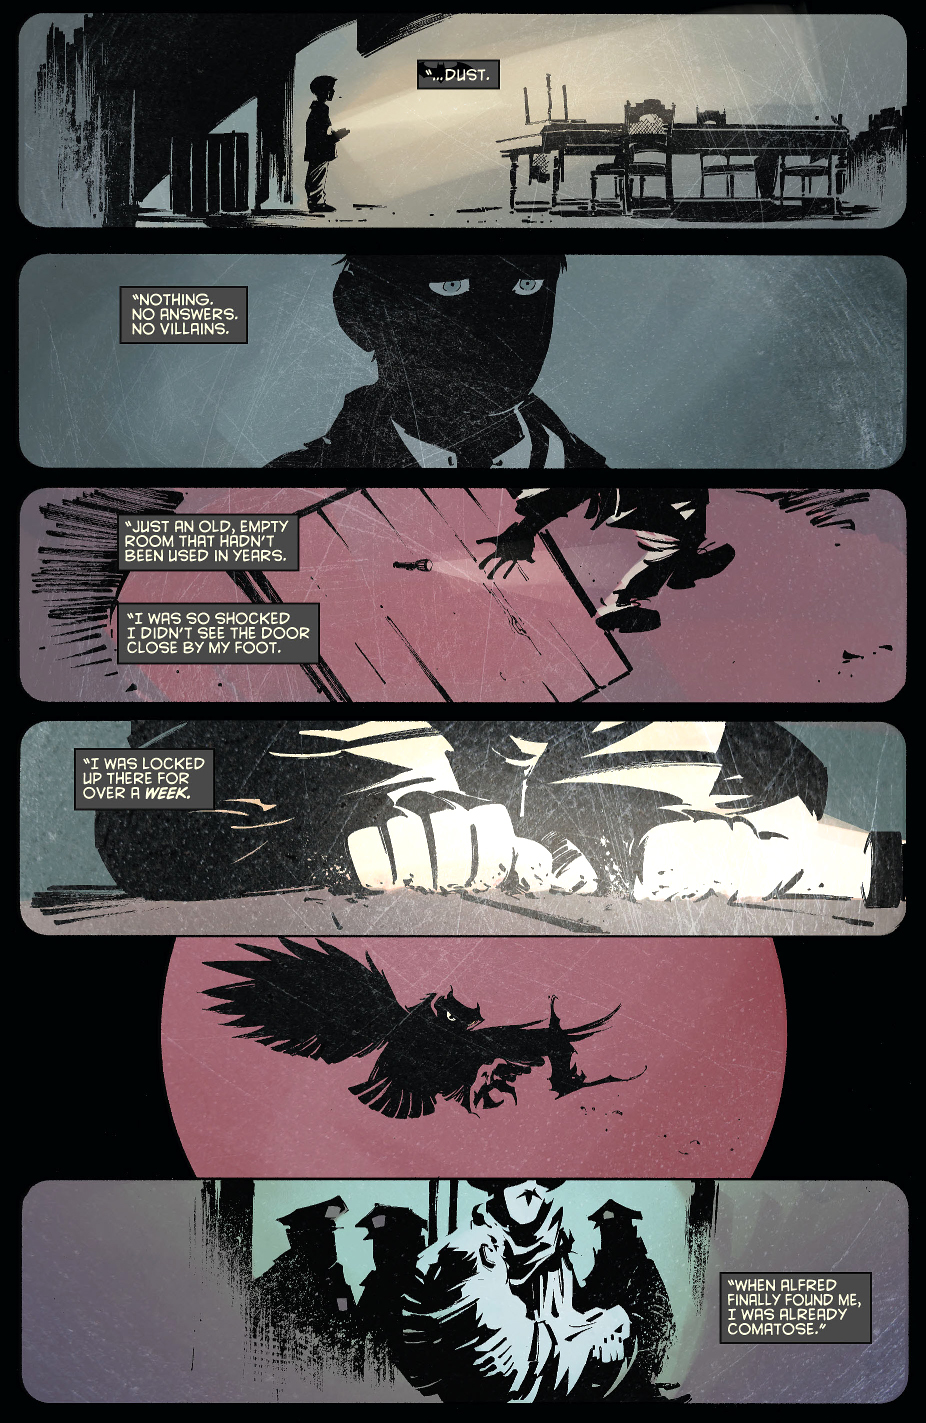 bruce wayne investigated the court of owls